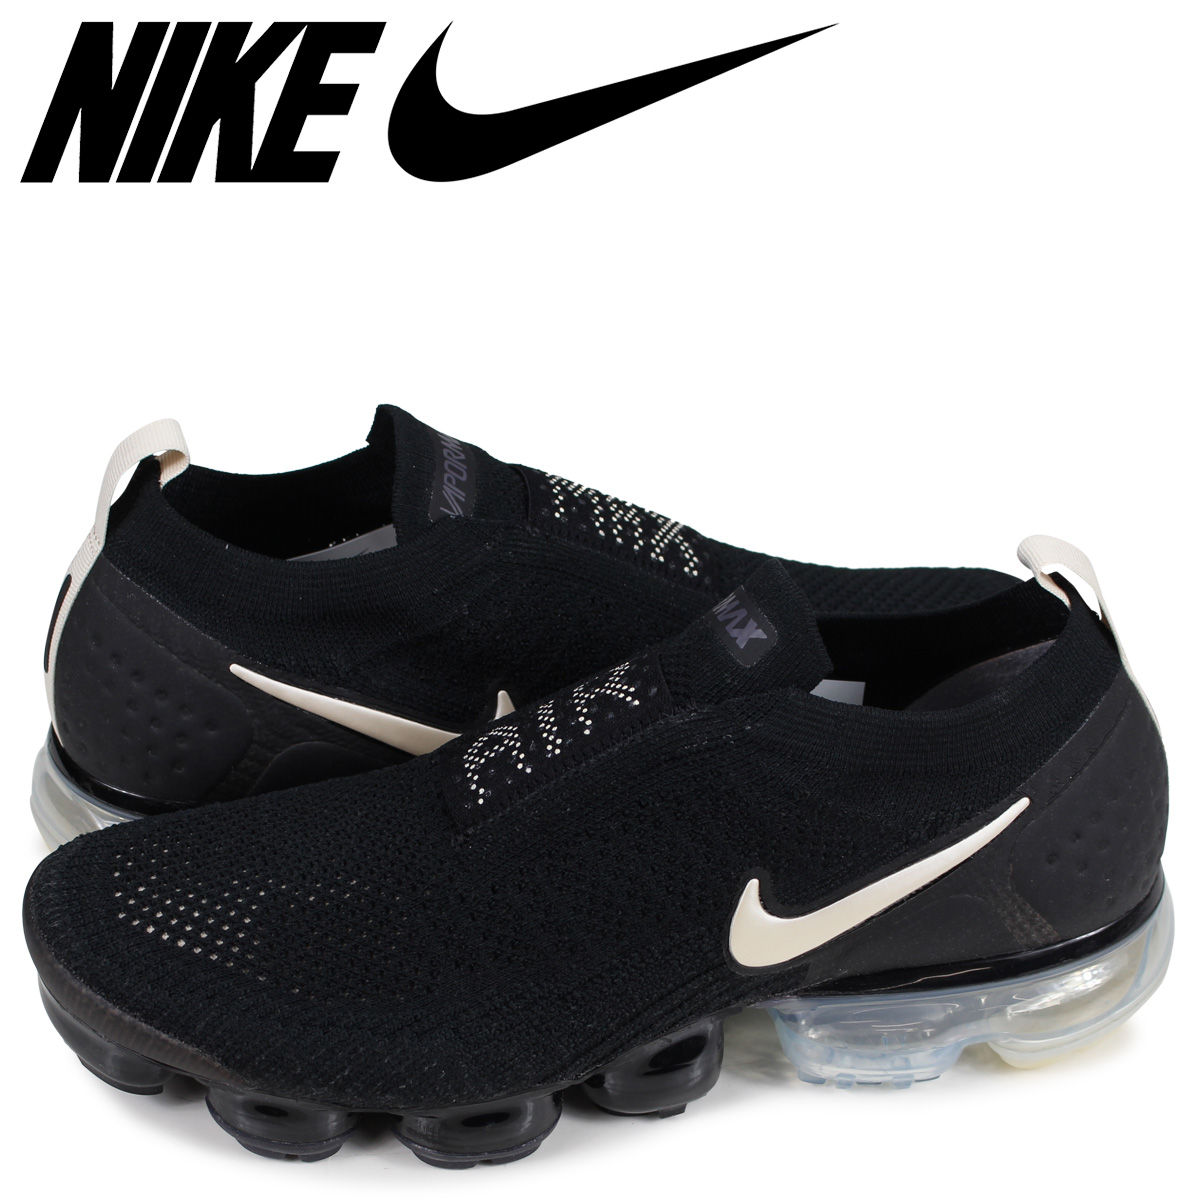 NIKE AIR VAPORMAX FLYKNIT MOC 2 Nike air vapor max fried food knit 2 sneakers men black black AH7006 002